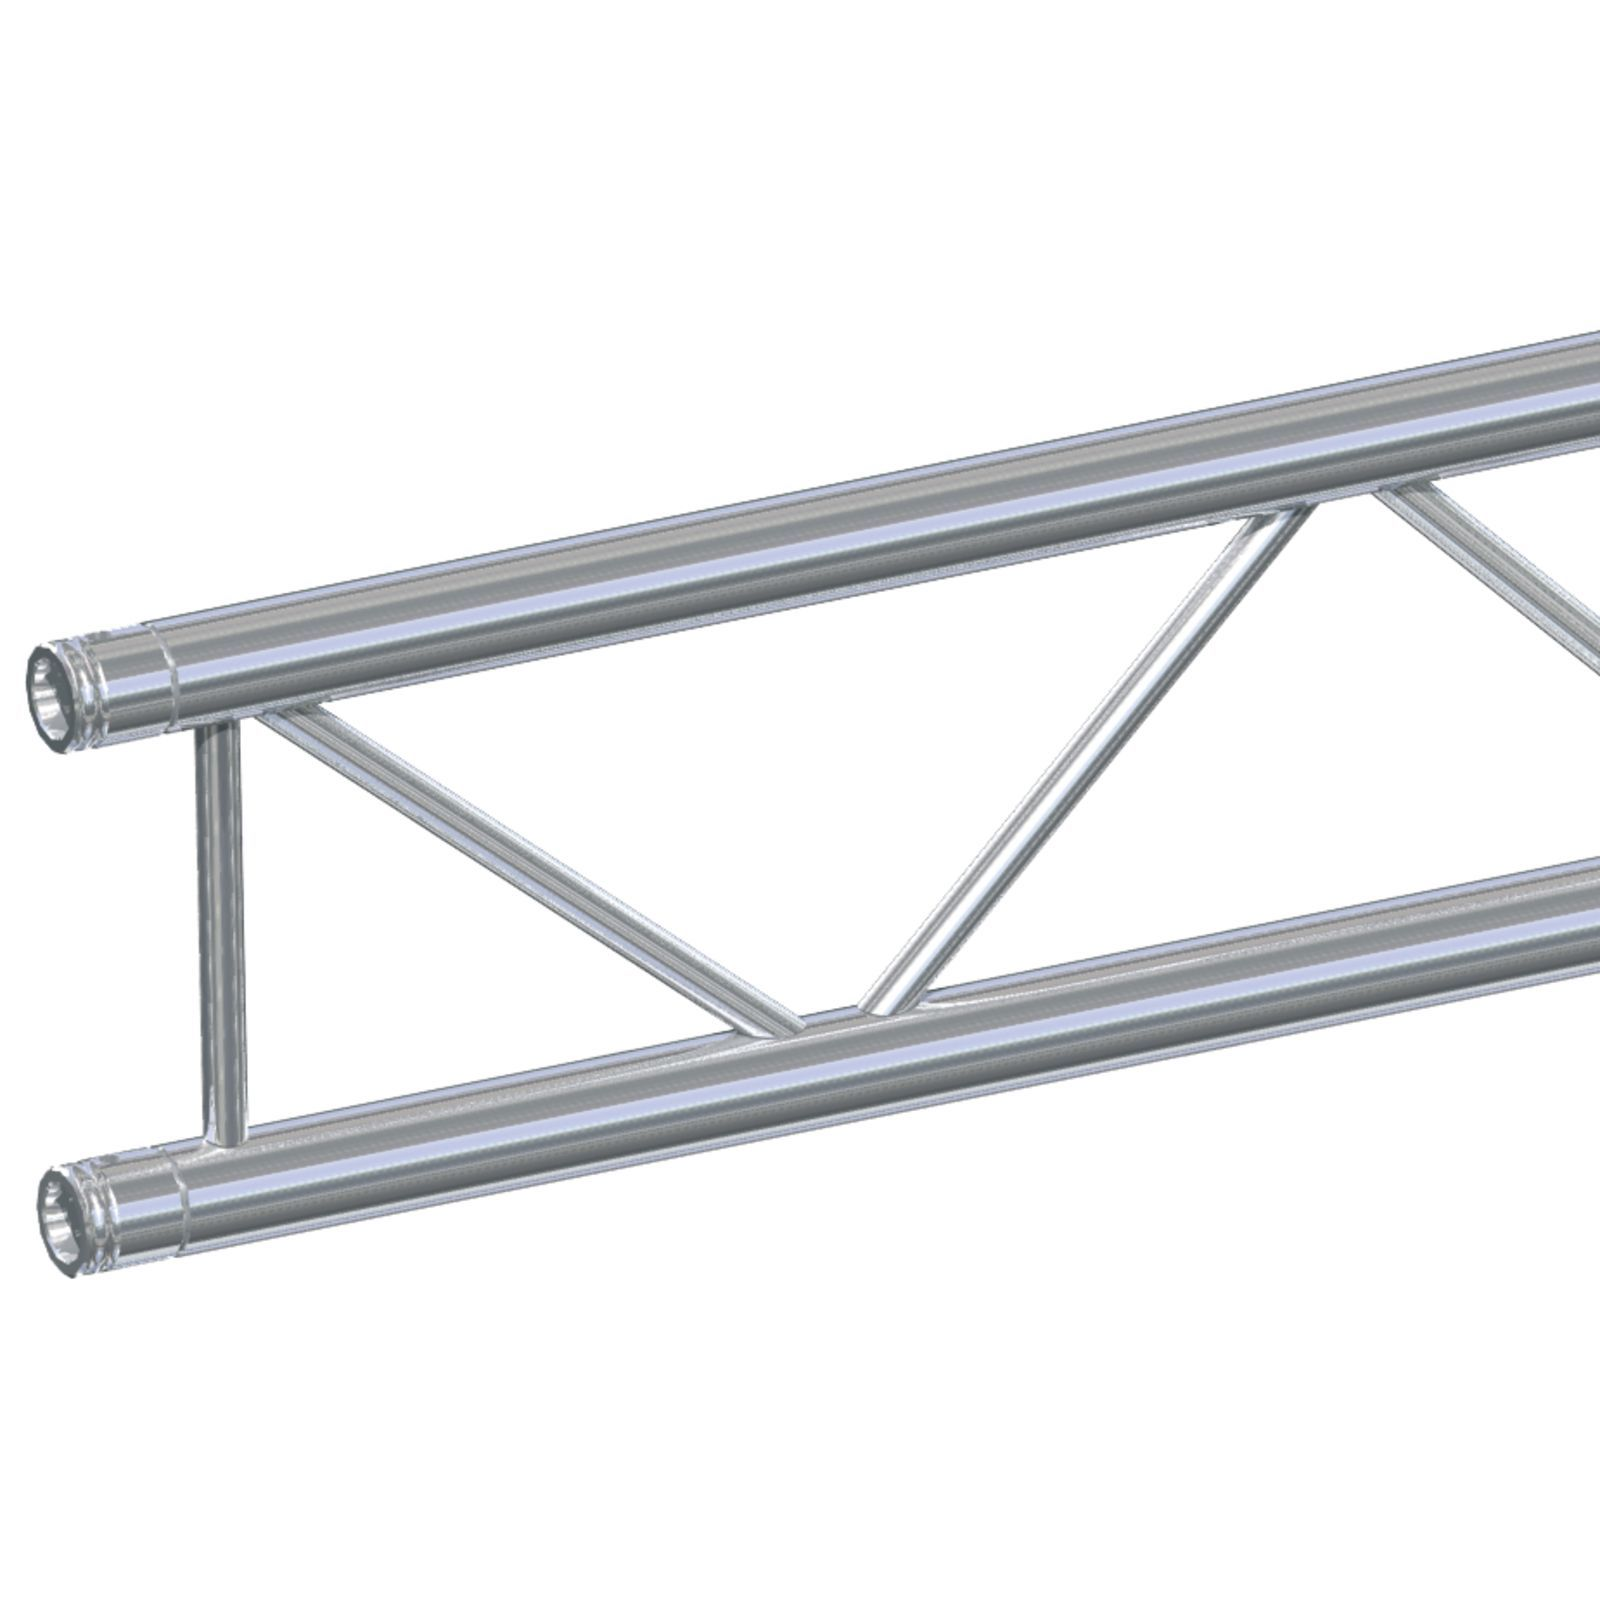 Global Truss F32 450cm Truss 2-Point, TÜV-Certified Produktbillede